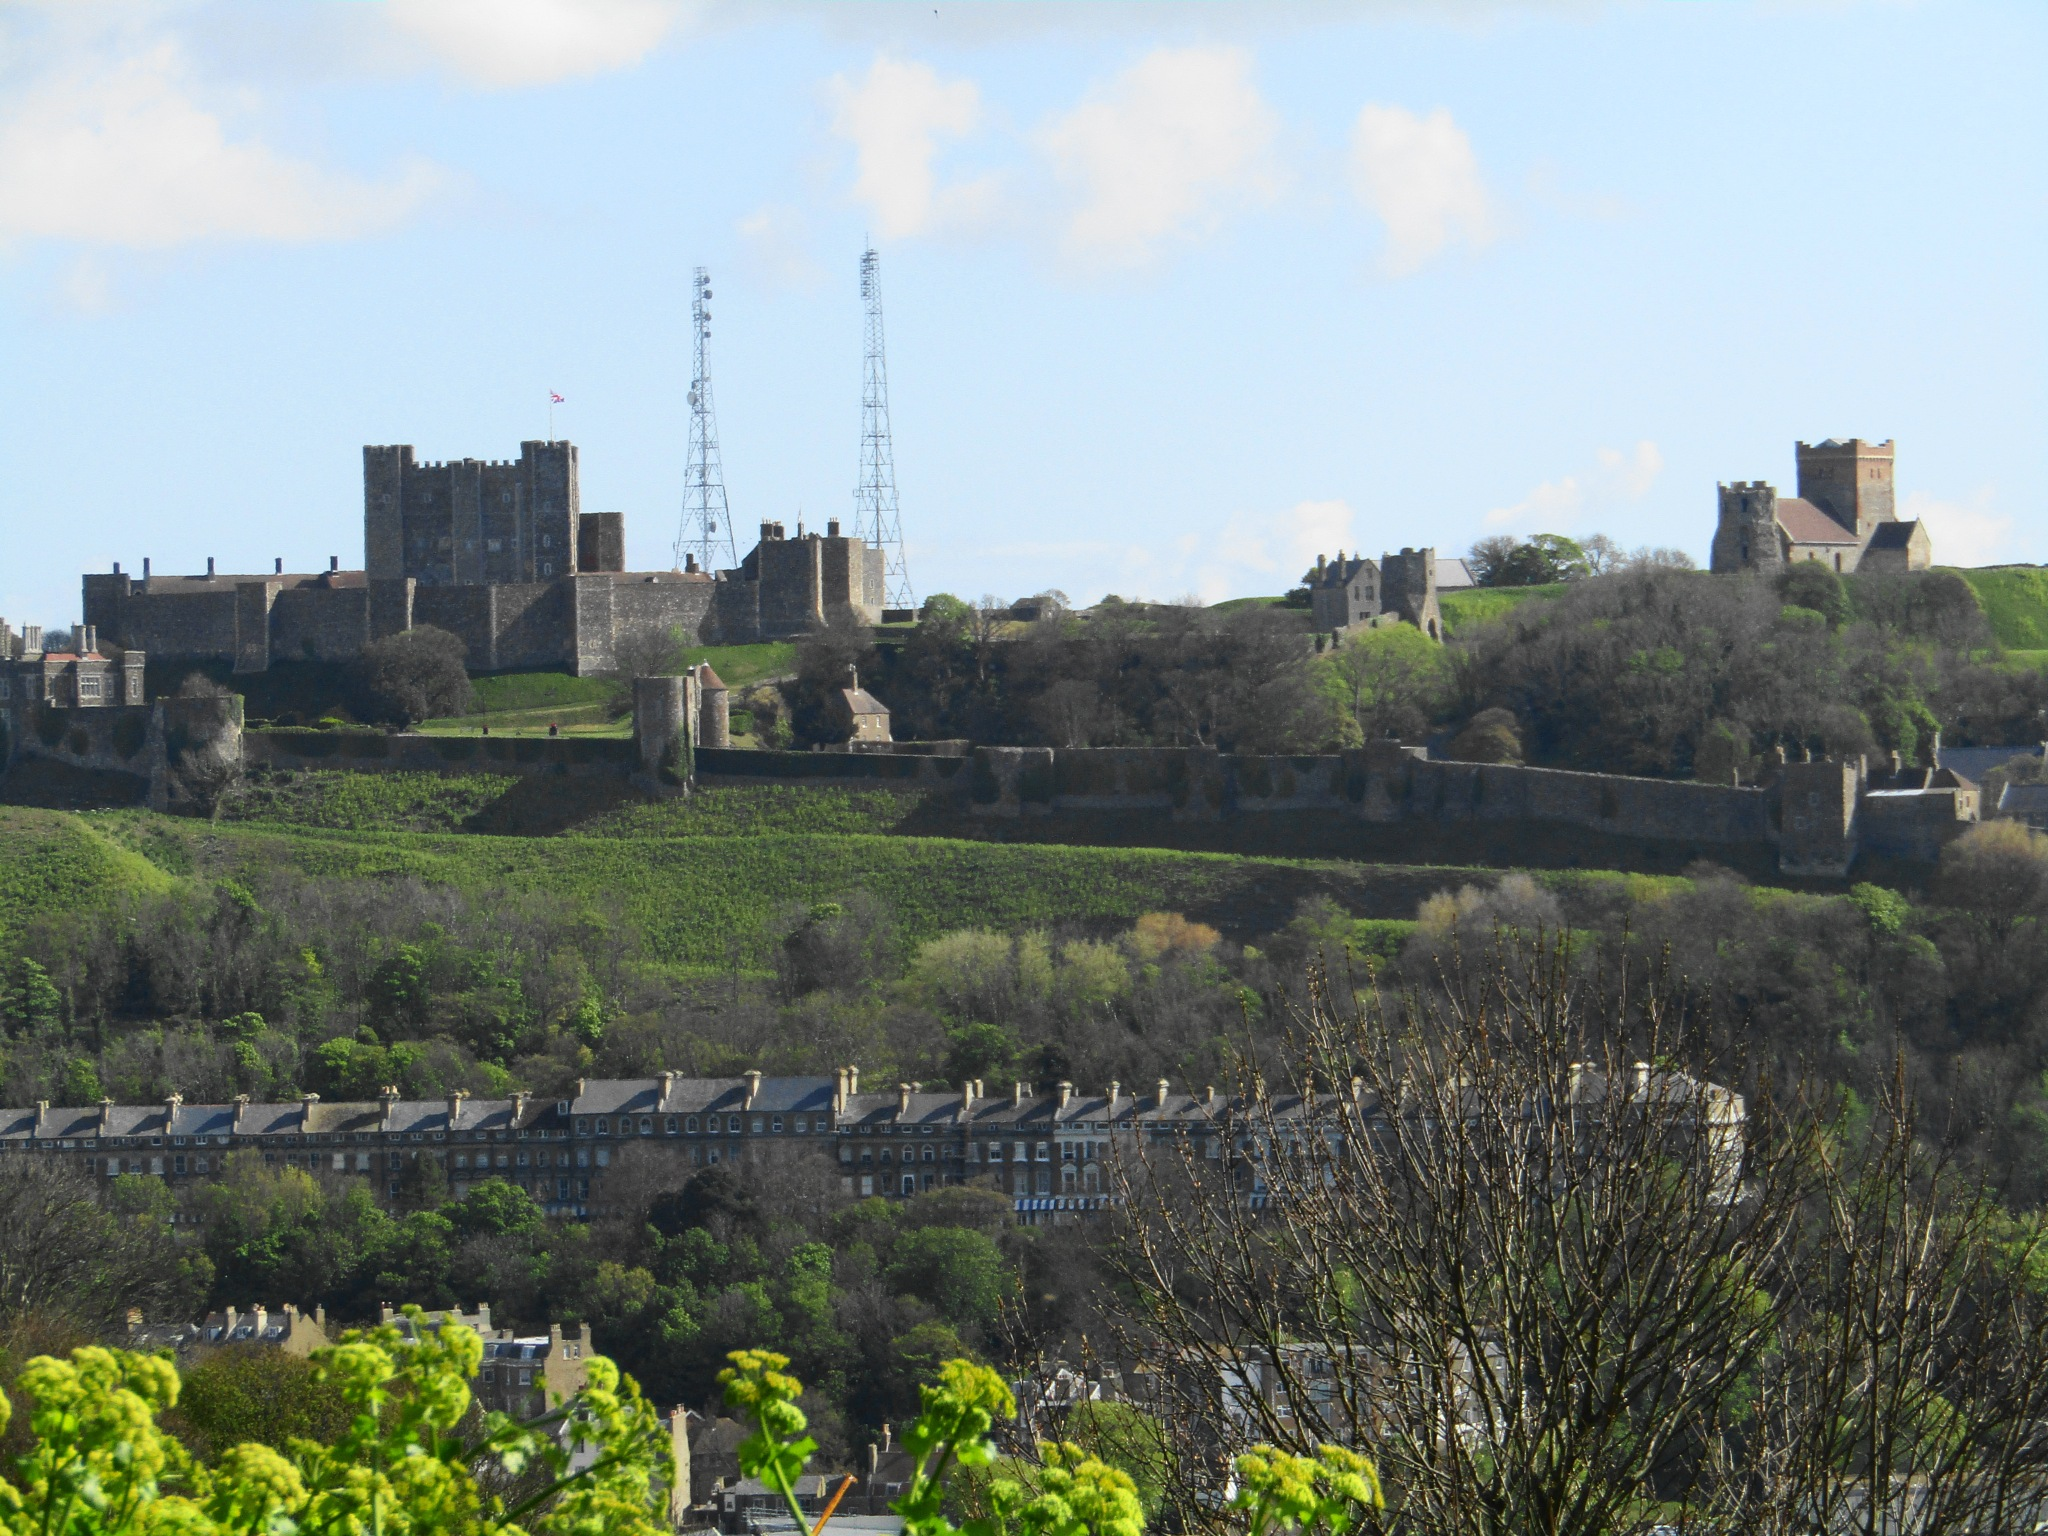 DOVER CASTLE by mikewoodland21